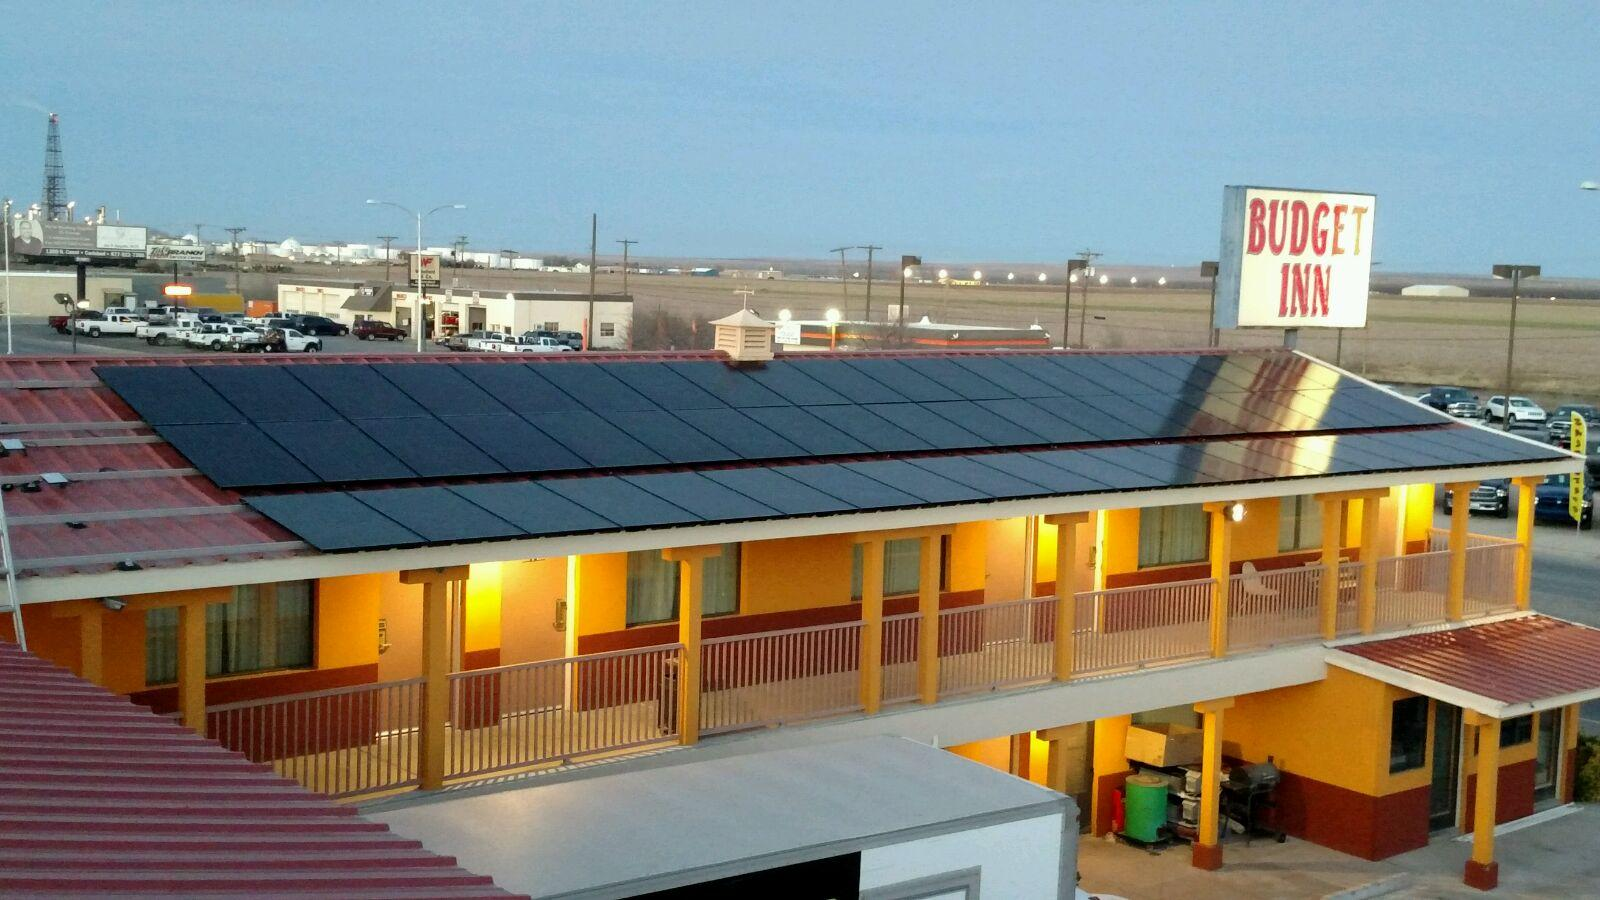 Enchanted Solar 2020 Profile And Reviews Energysage